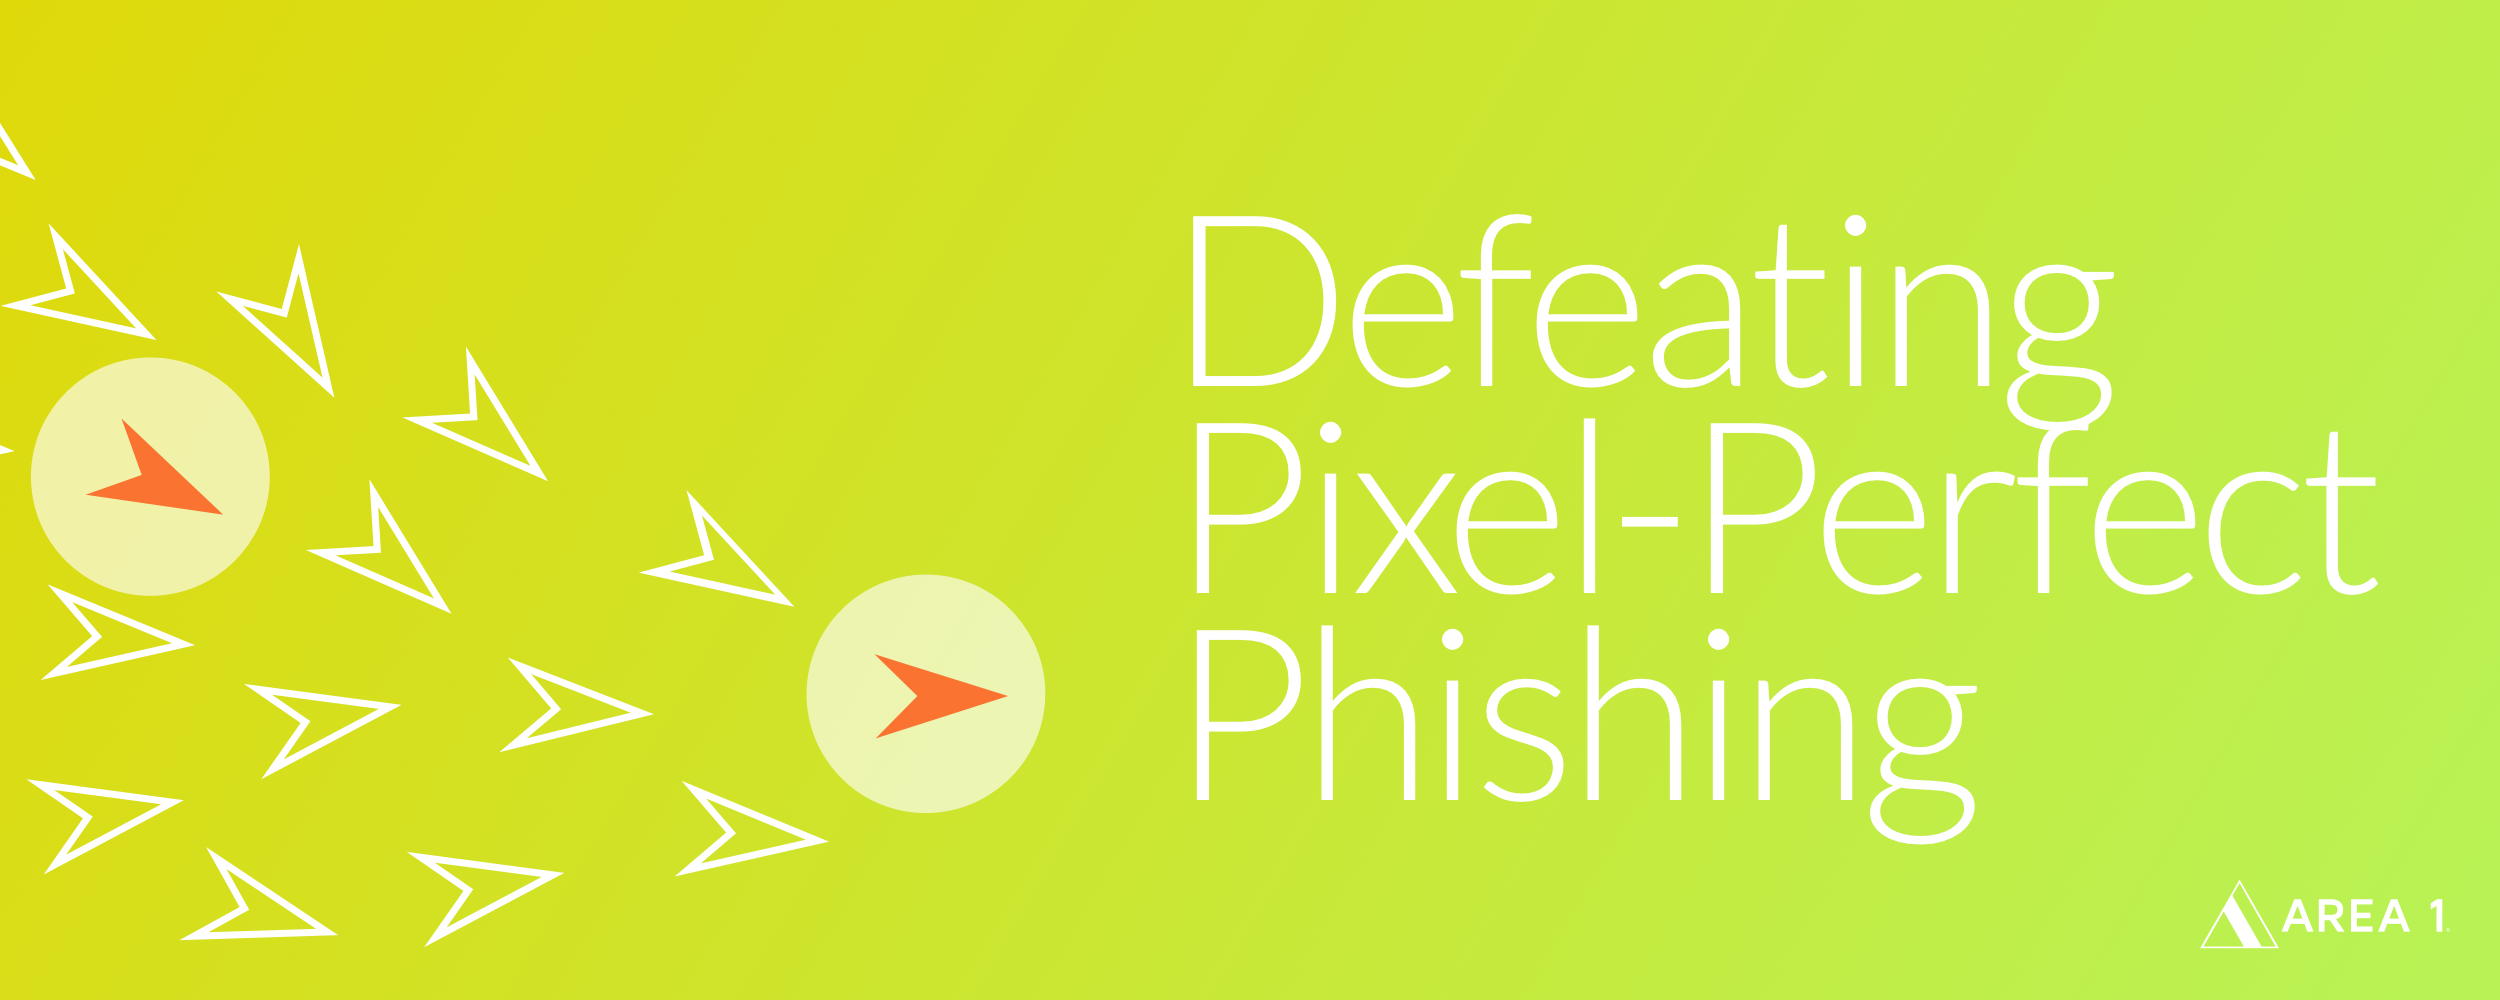 Defeating_Pixel